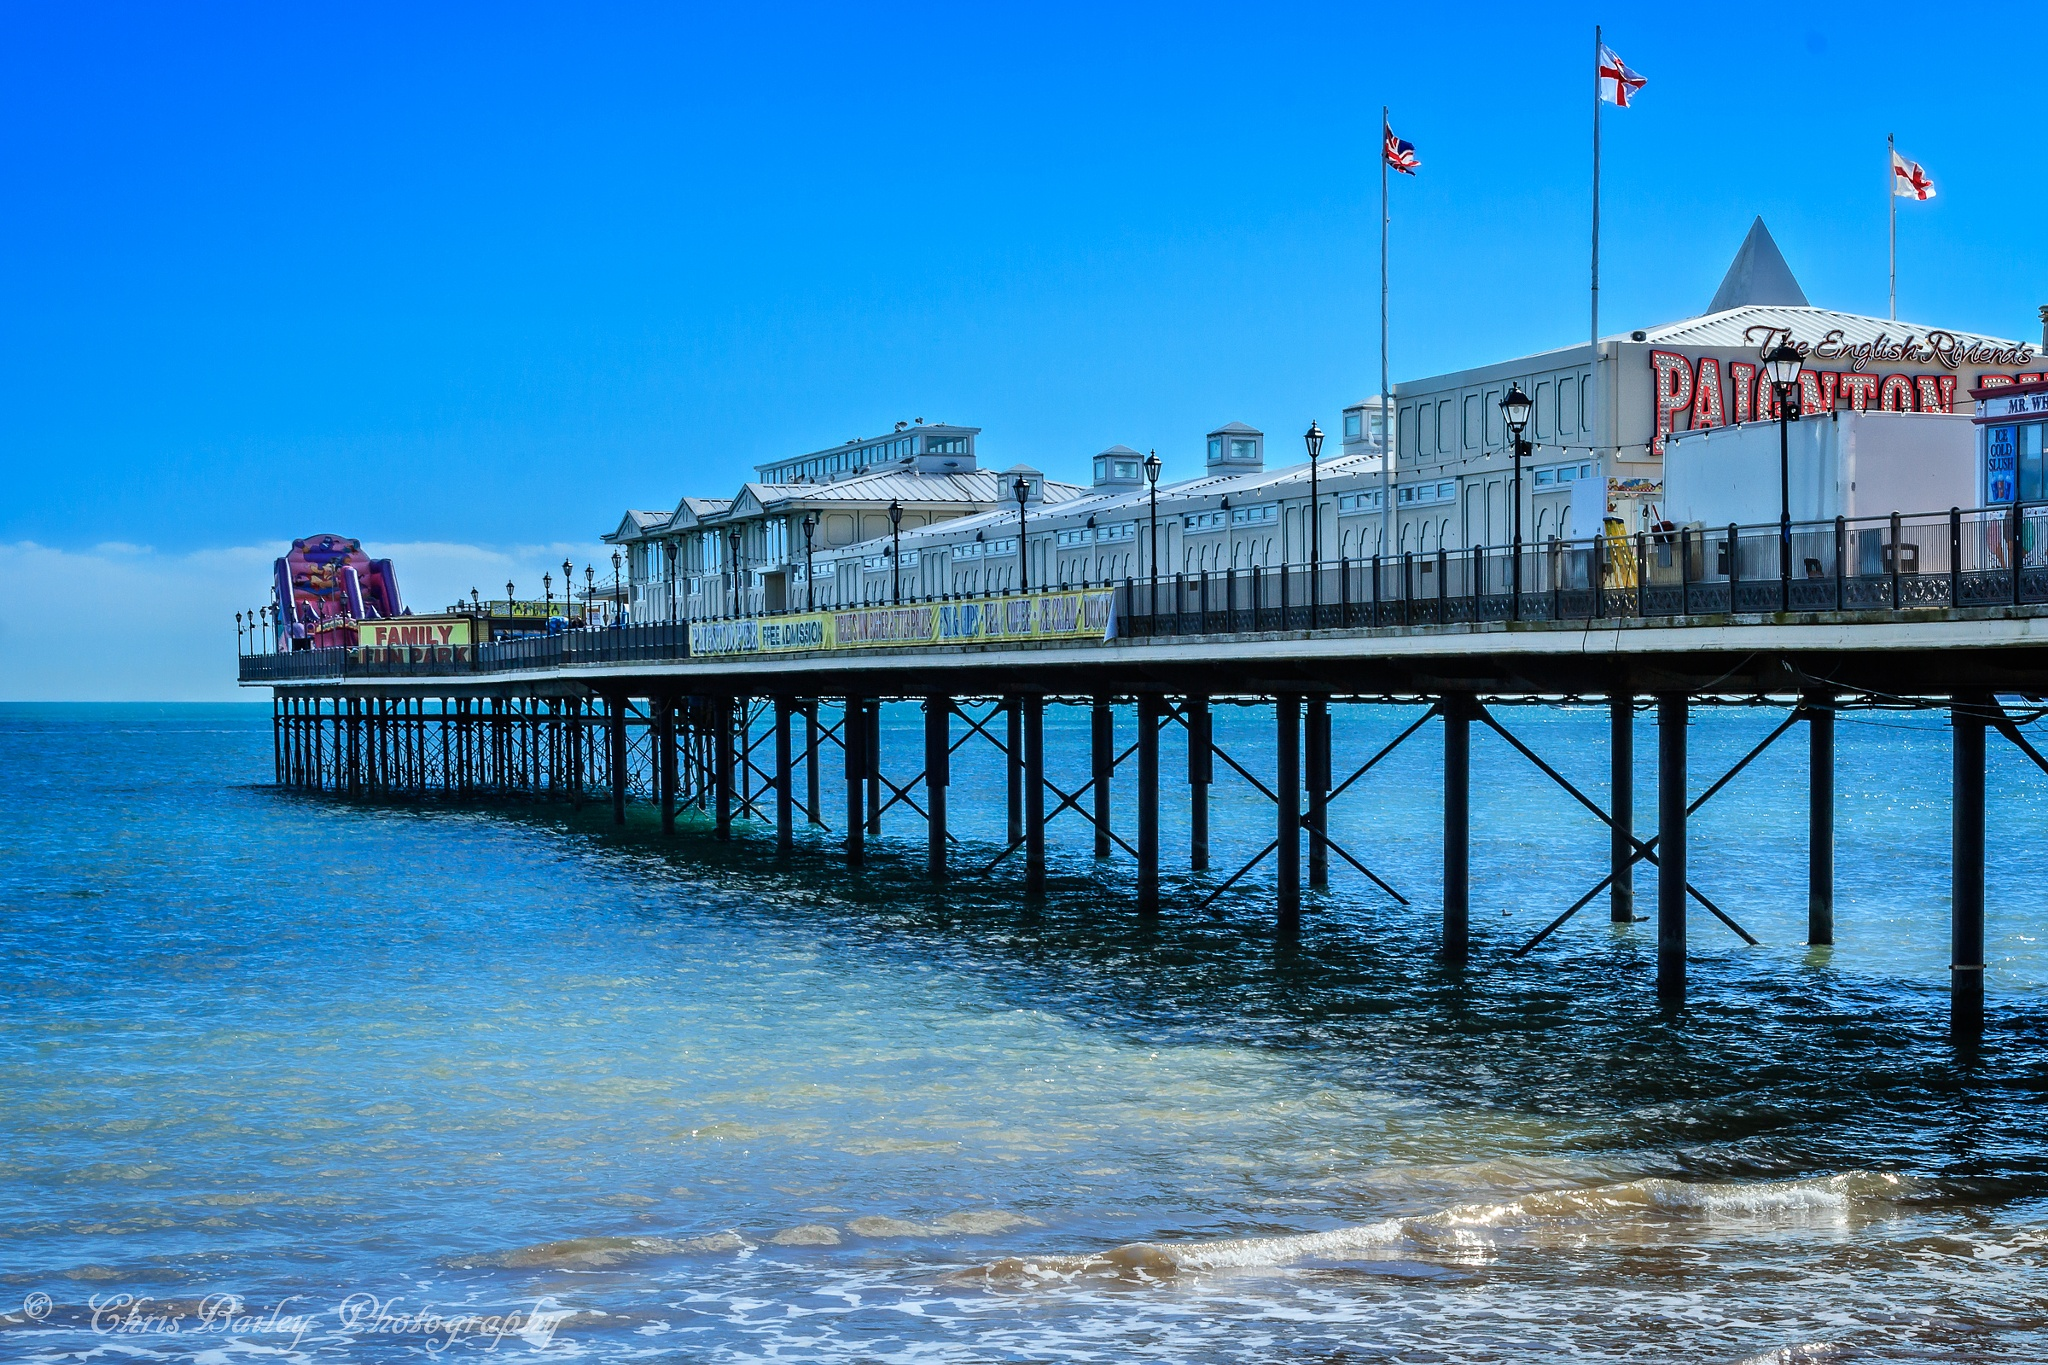 Paignton Pier. 02.1. 20160331 by Chris Bailey